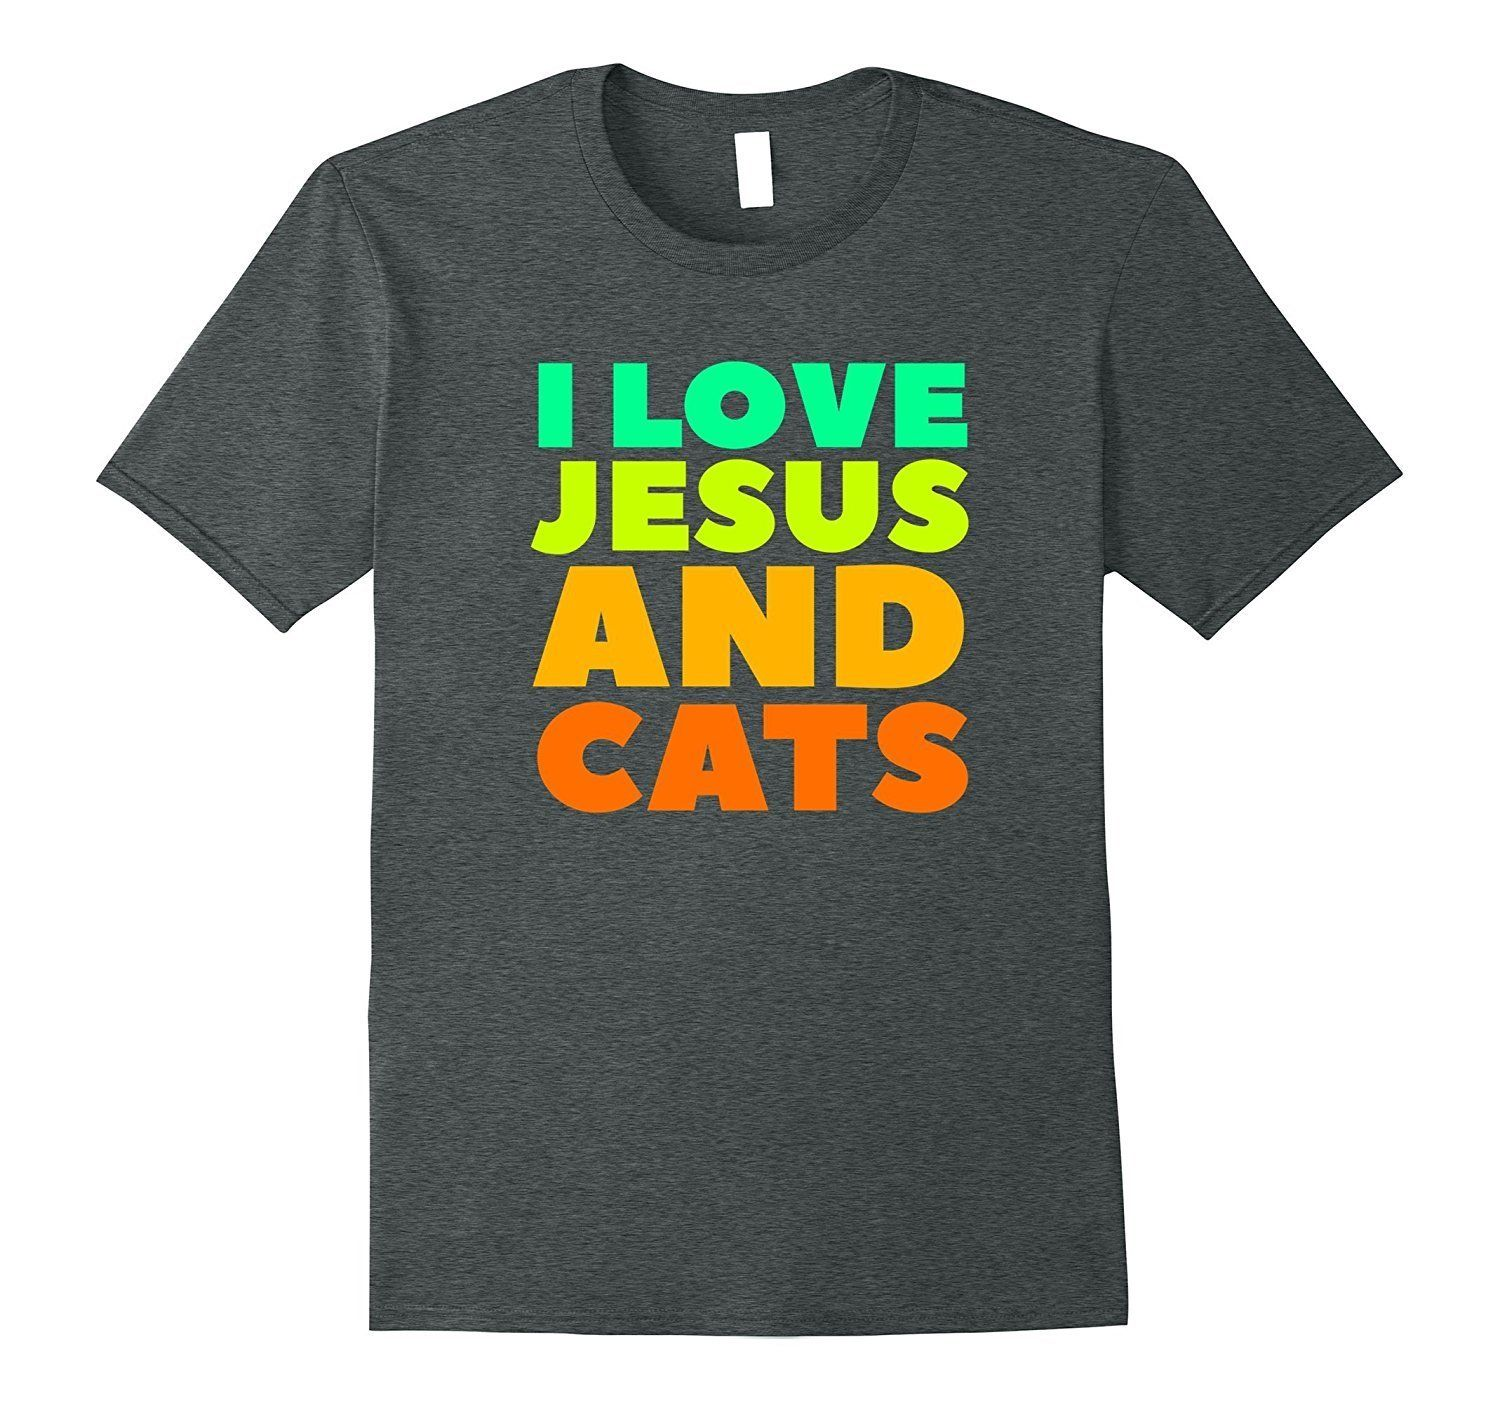 I love jesus and cats funny tshirt heather grey tshirt and cotton